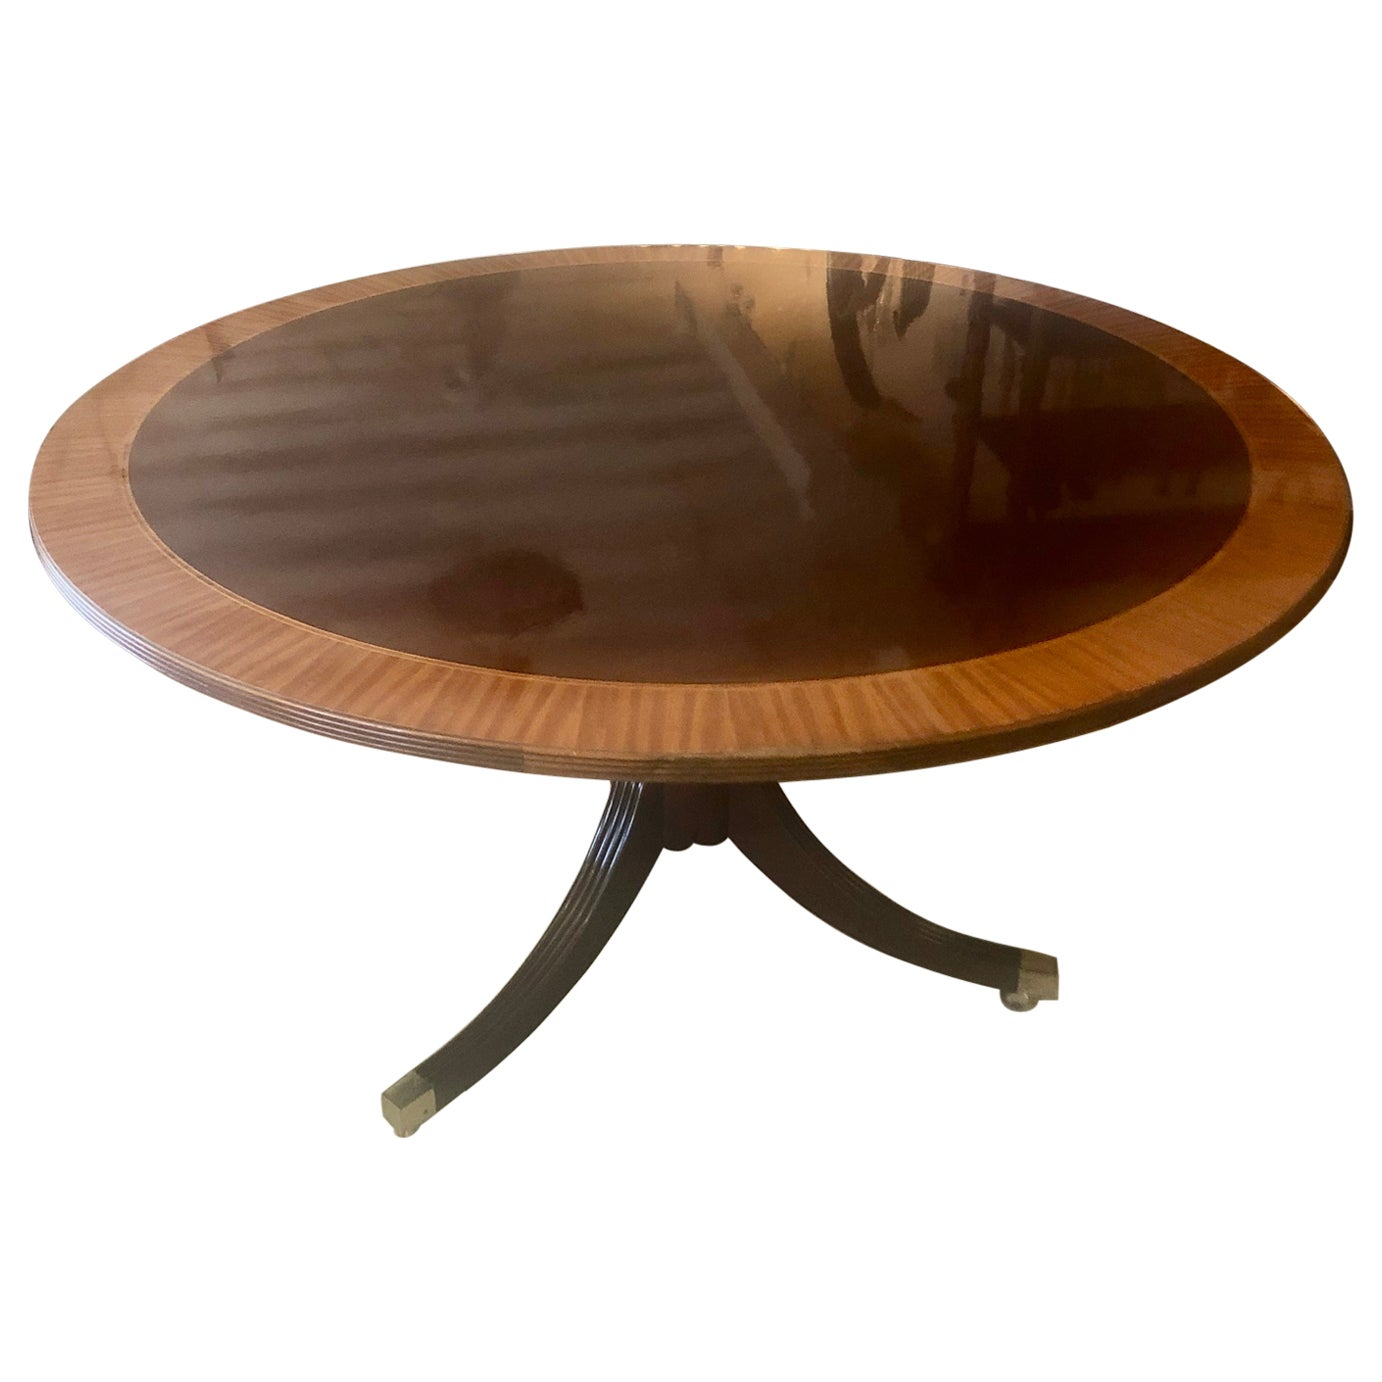 Classic Round Mahogany and Banded Satinwood Dining Table Center Table by Baker